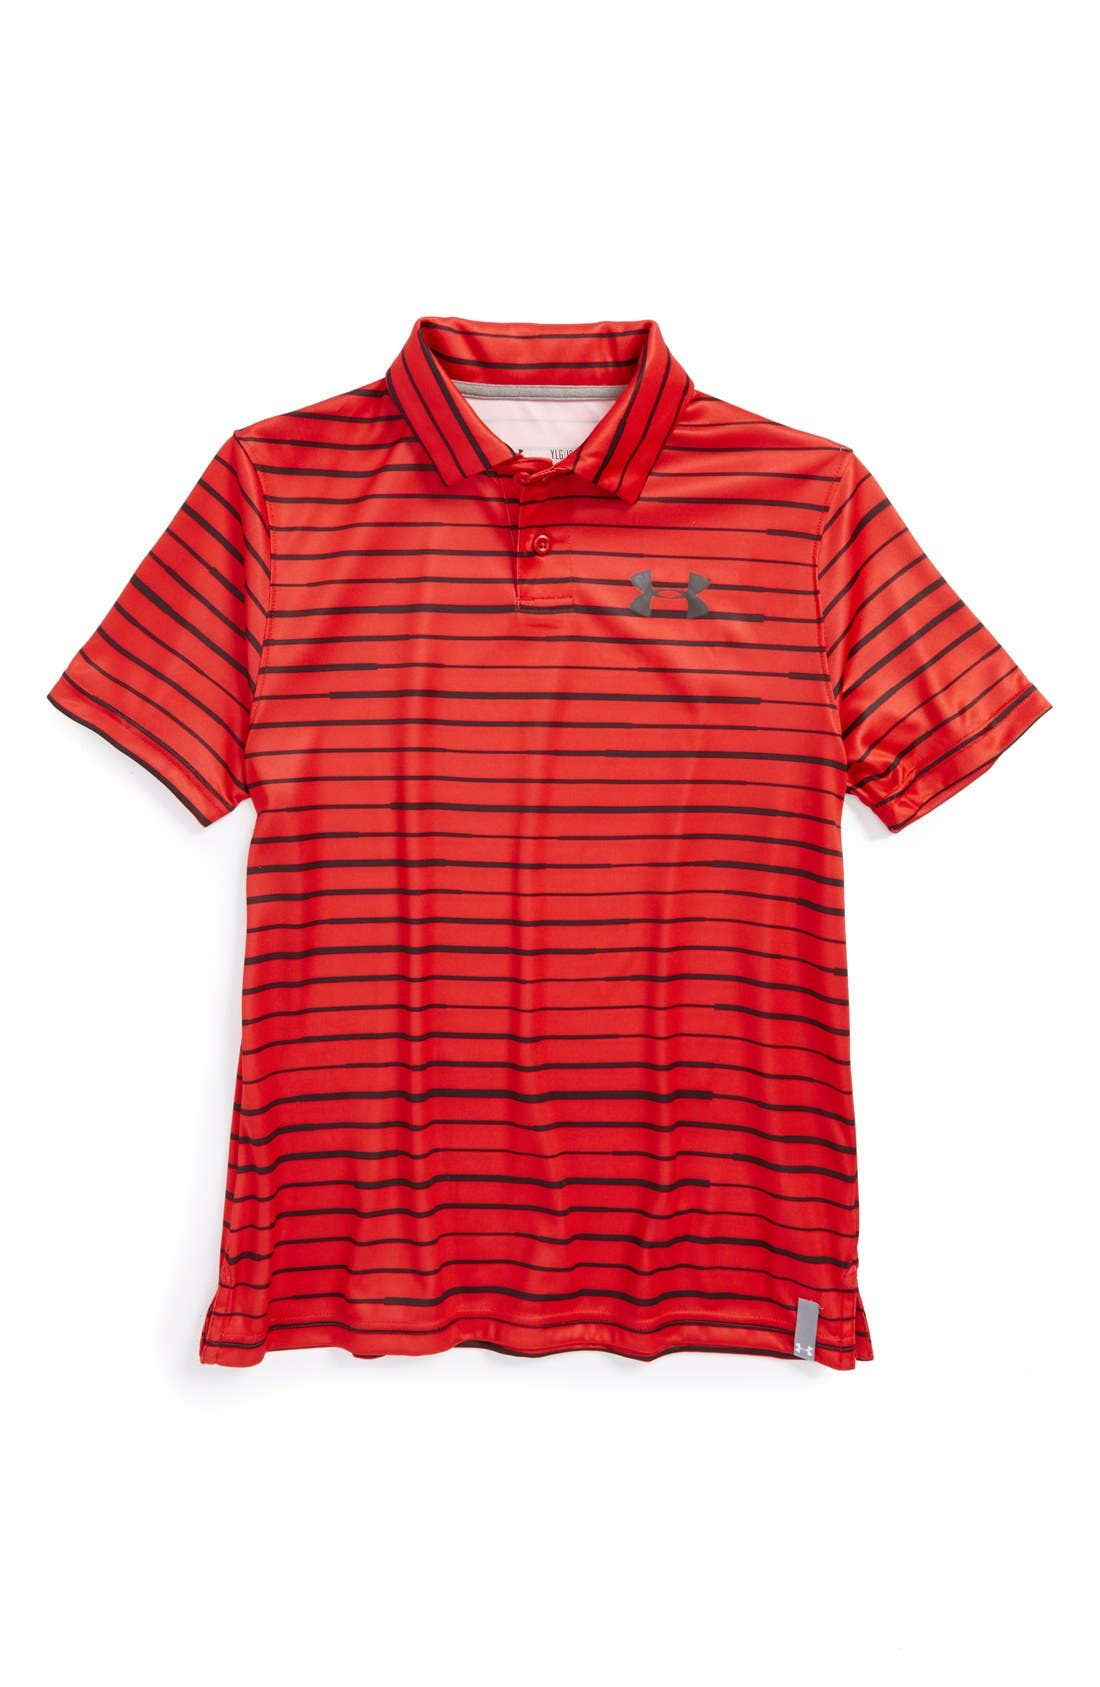 Alternate Image 1 Selected - Under Armour 'Seismic Stripe' Tech Polo Shirt (Big Boys)